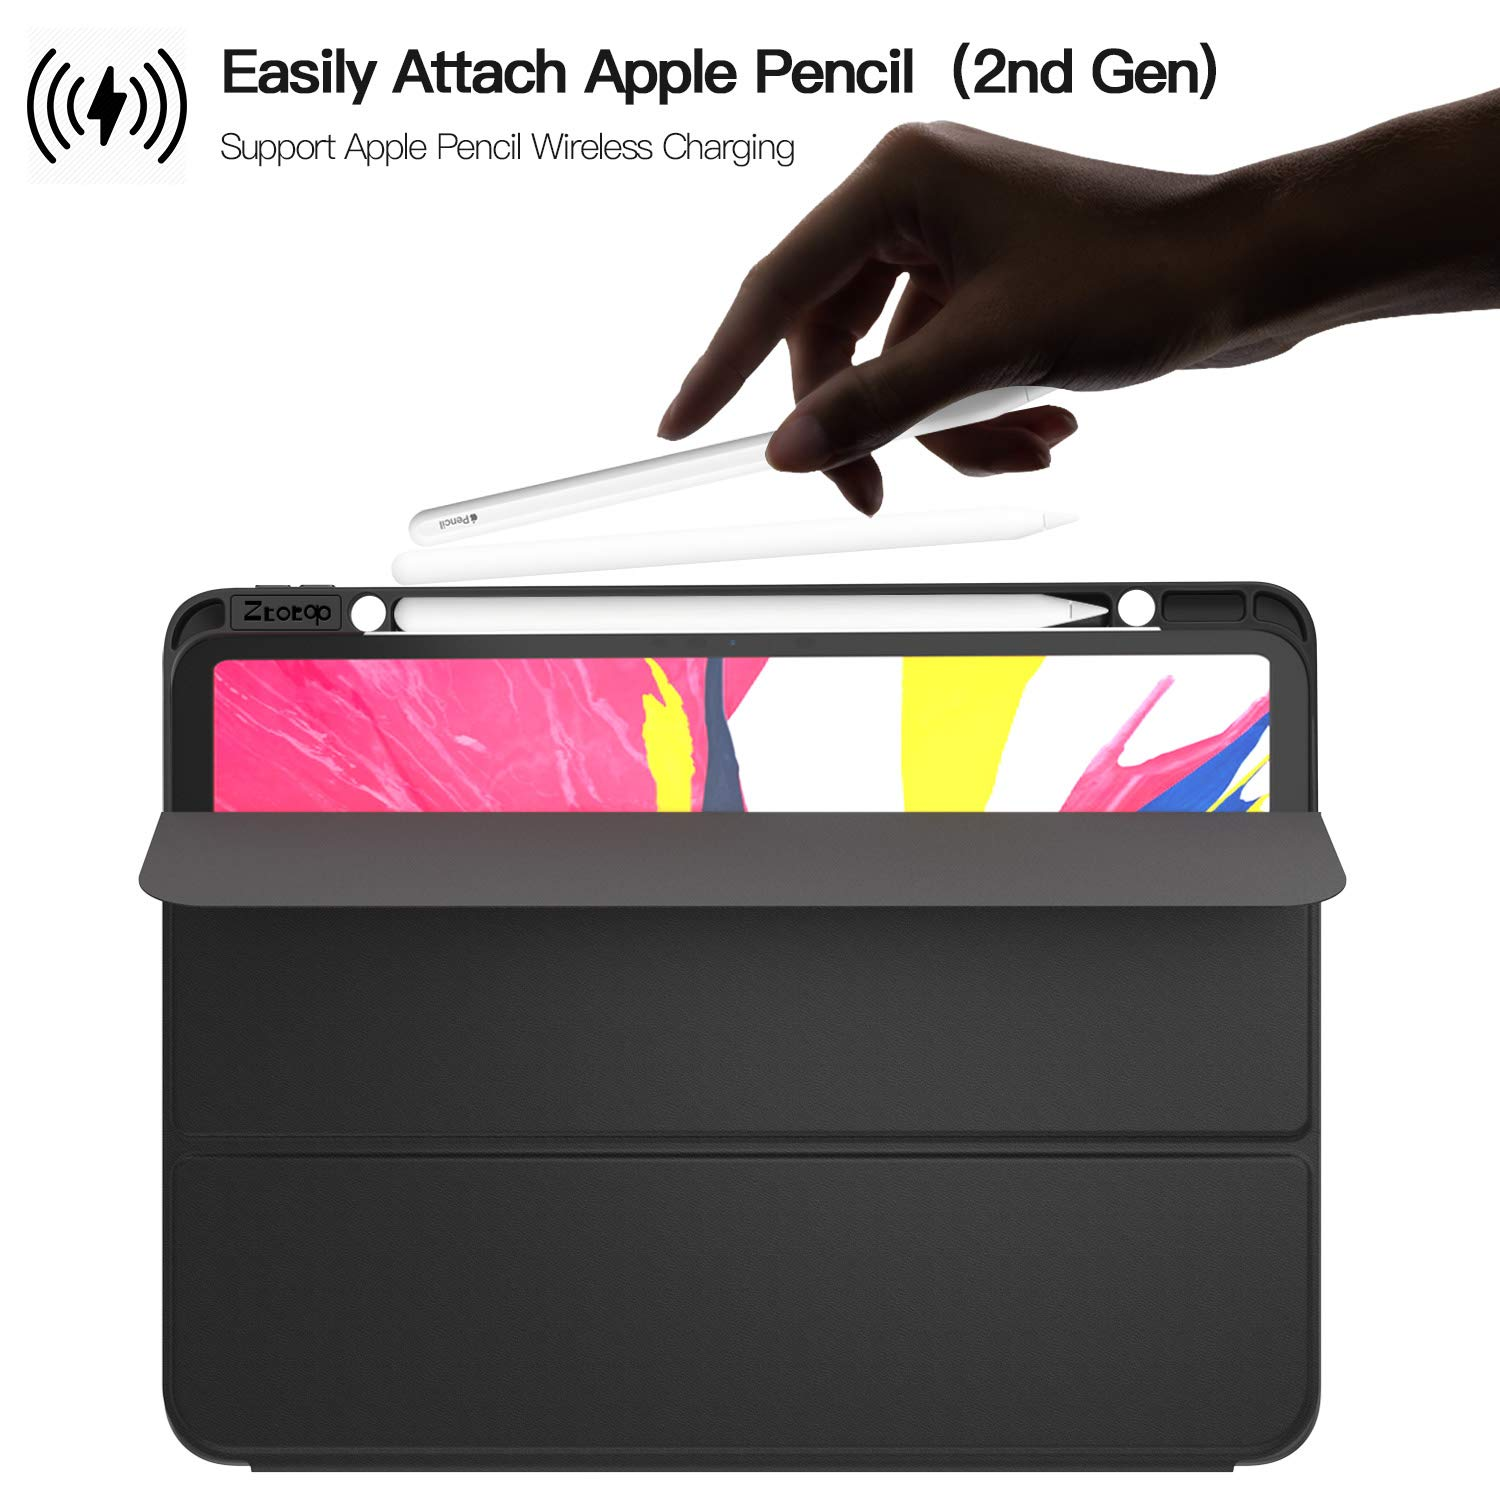 Ztotop Case for iPad Pro 12.9 Inch 2018, Full Body Protective Rugged Shockproof Case with iPad Pencil Holder, Auto Sleep/Wake, Support iPad Pencil Charging for iPad Pro 12.9 Inch 3rd Gen - Black by Ztotop (Image #4)